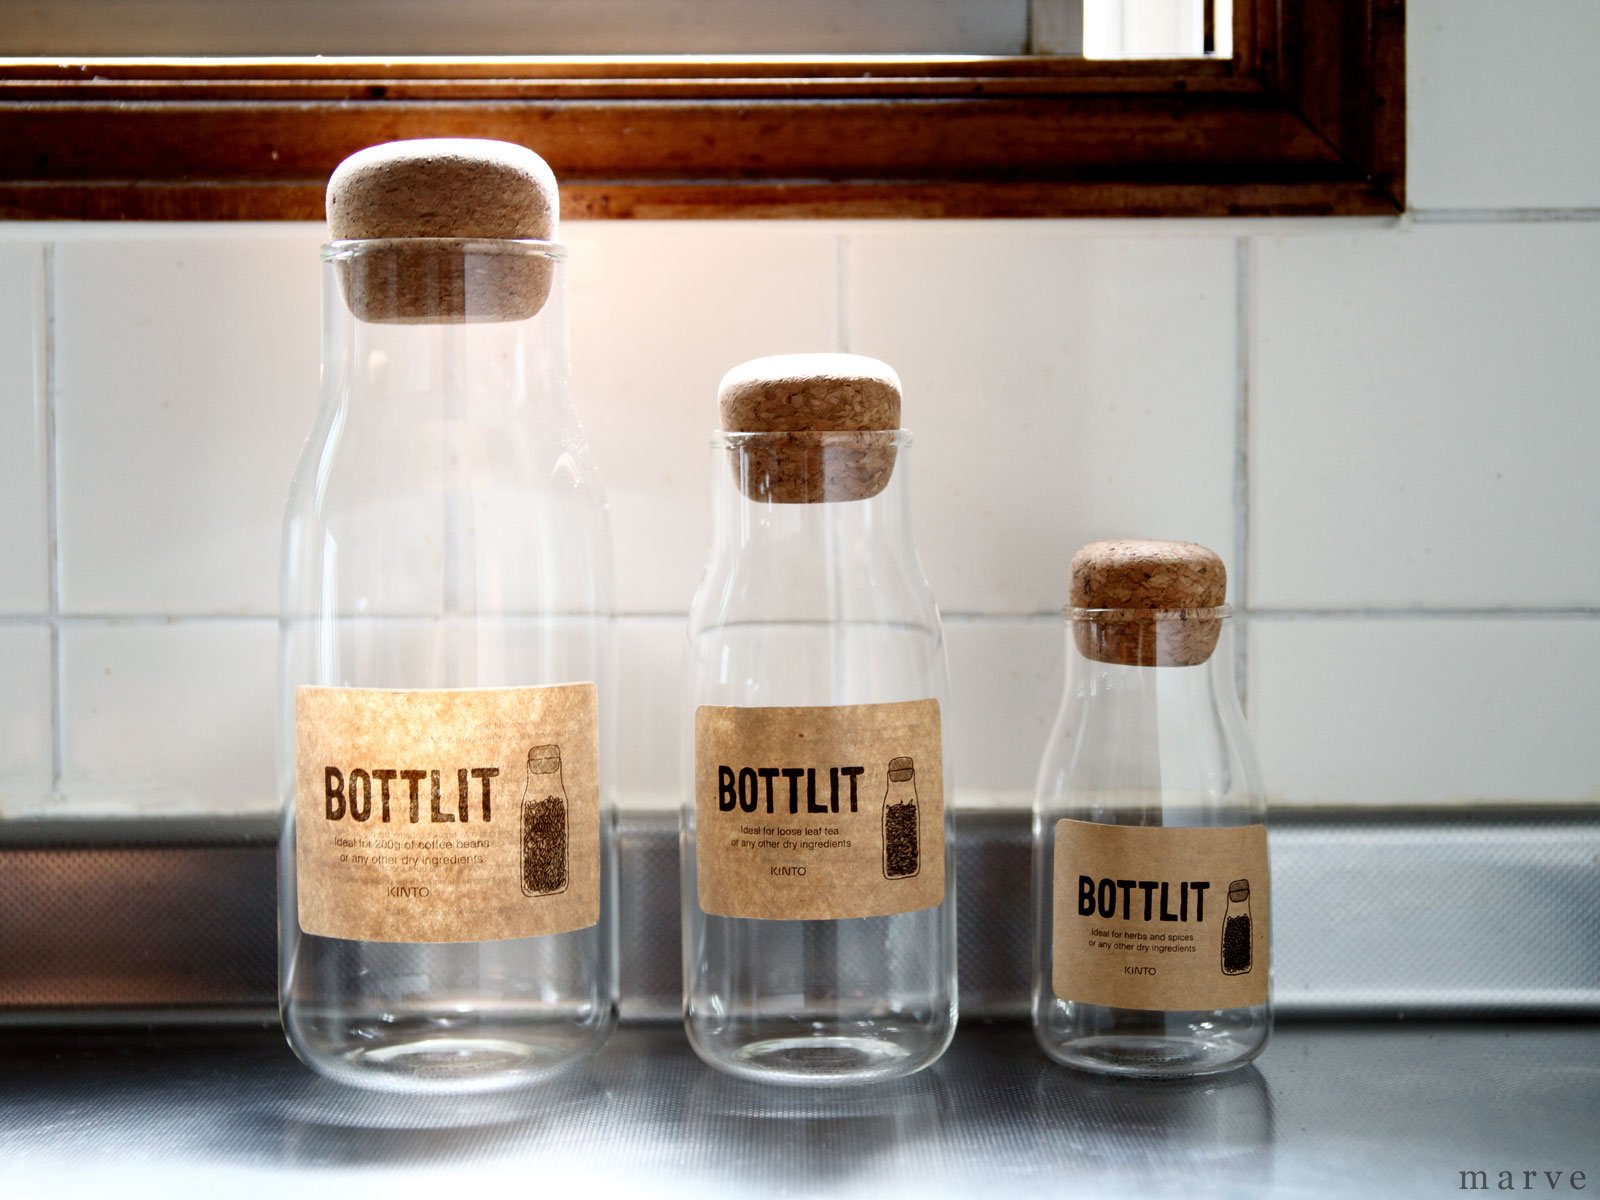 BOTTLIT(ボトリット) ガラスキャニスター 600ml<img class='new_mark_img2' src='//img.shop-pro.jp/img/new/icons55.gif' style='border:none;display:inline;margin:0px;padding:0px;width:auto;' />